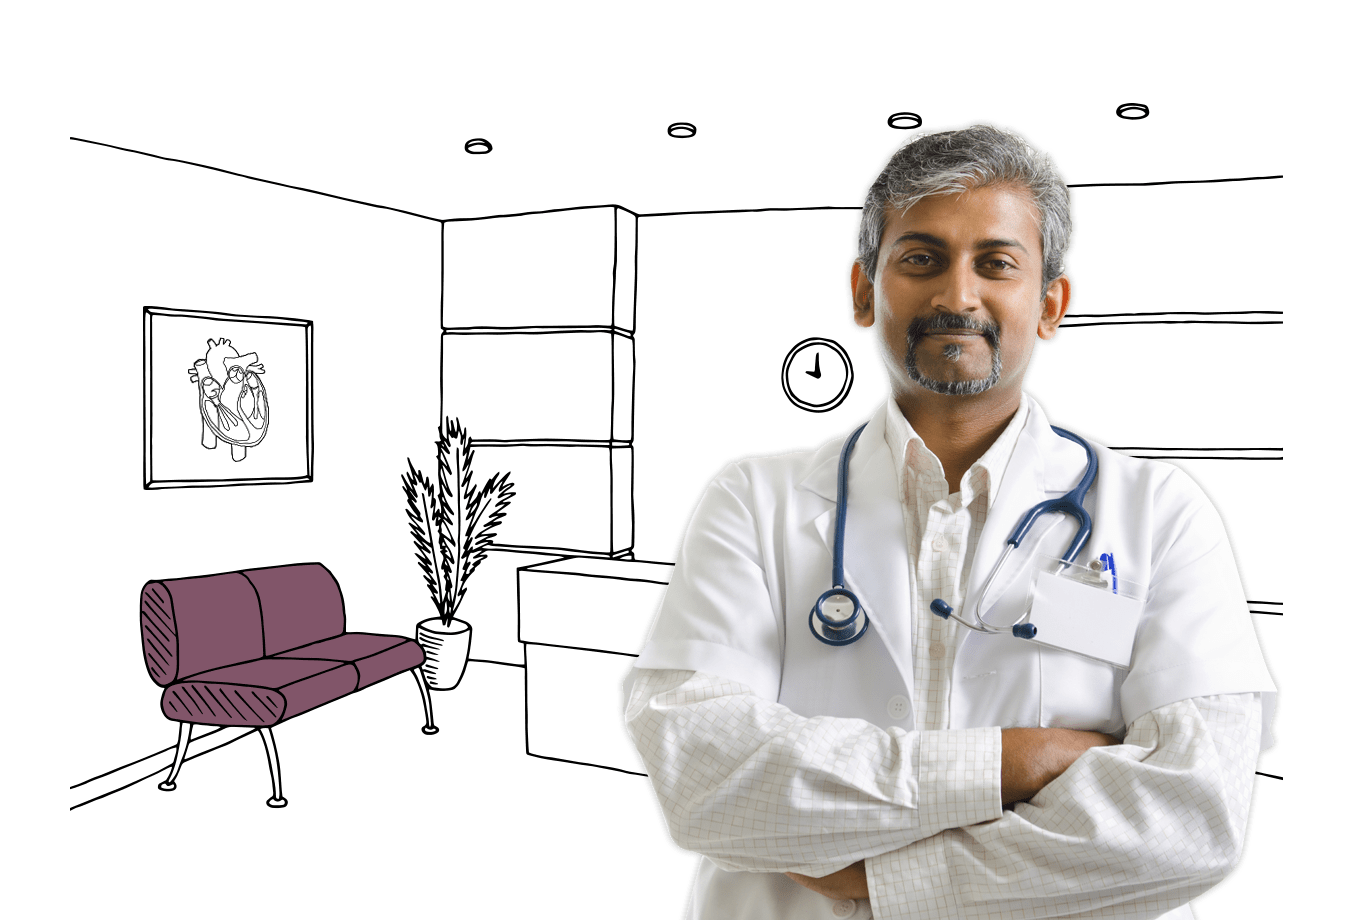 GP and health clinic insurance illustration of male doctor stood in waiting room